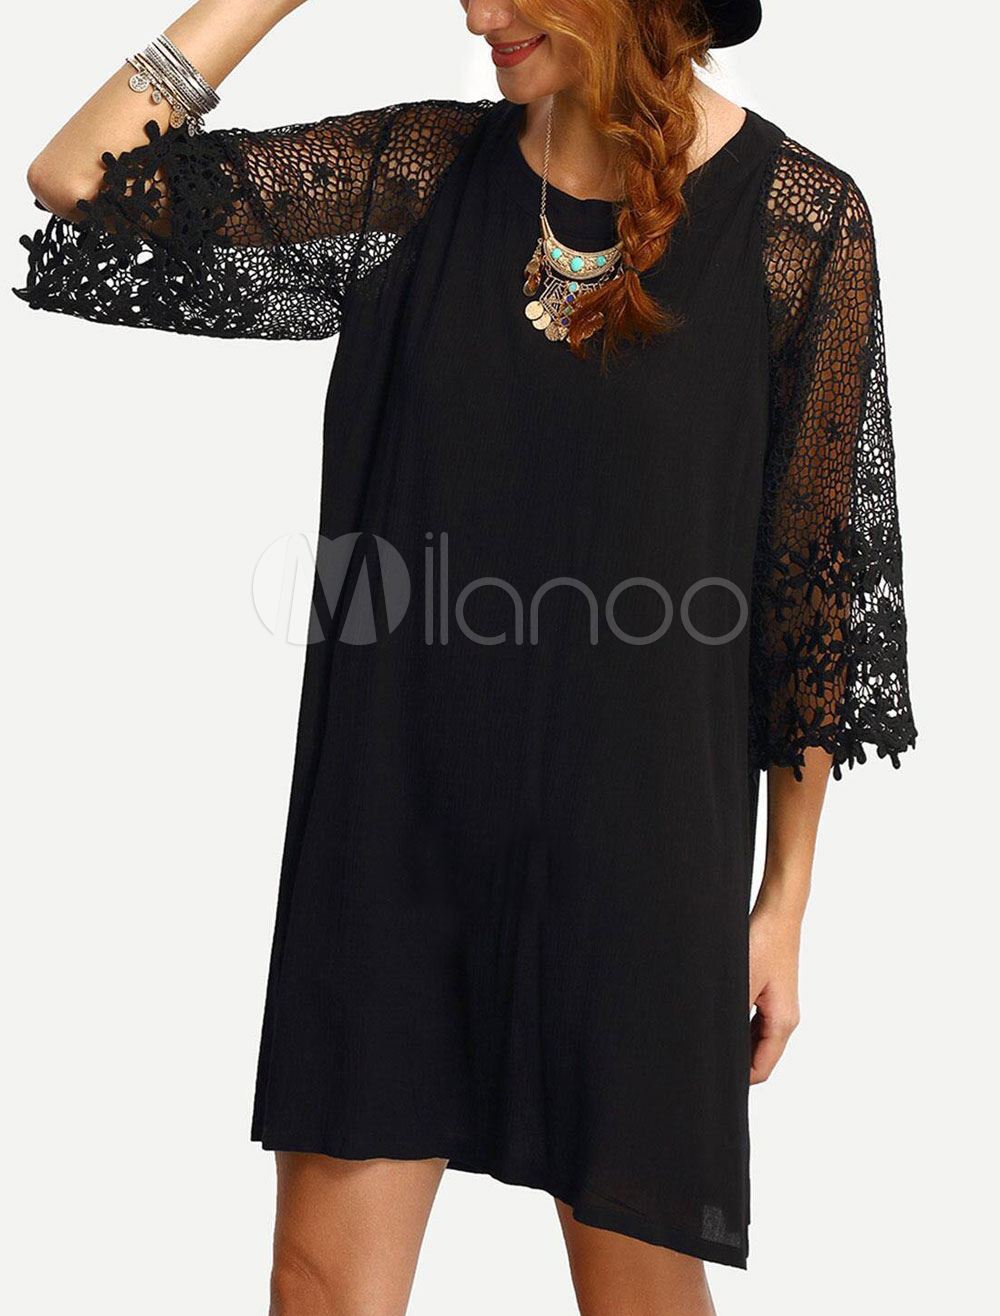 Buy Women's Black Dress Lace Half Sleeve Chiffon Round Neck Short Shift Dress for $35.99 in Milanoo store